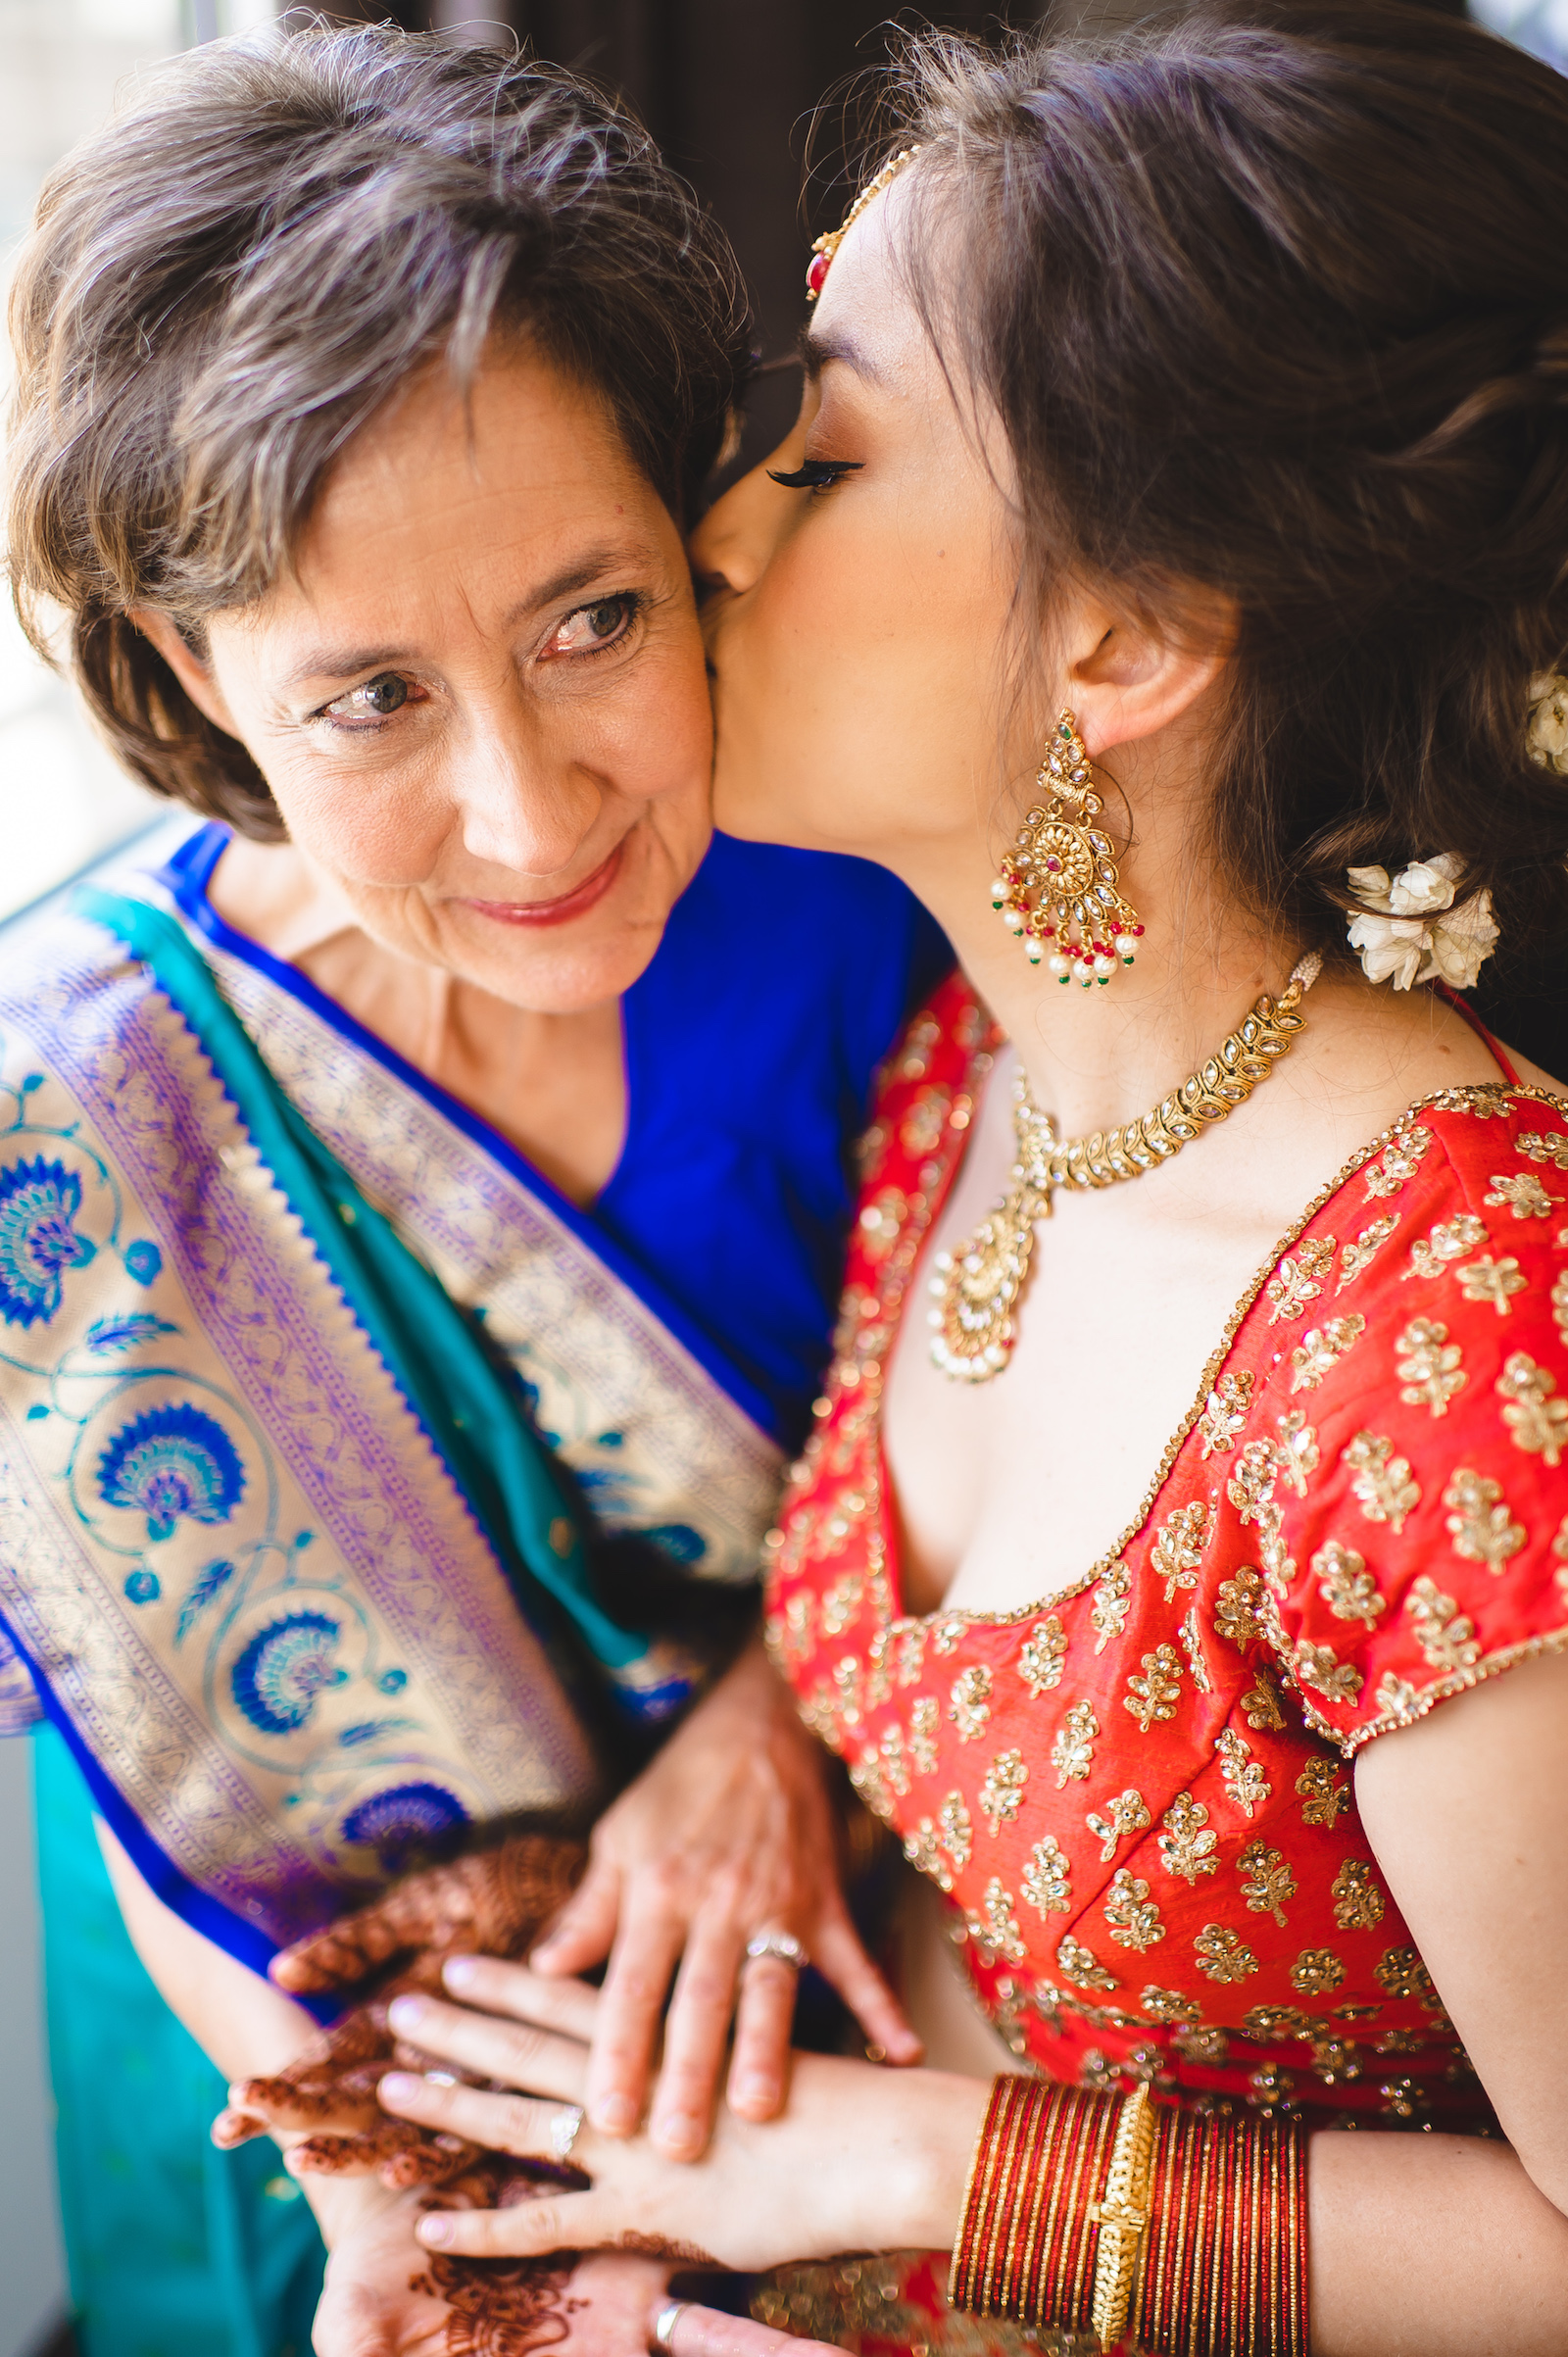 Mother of the bride and bride: Charming Indian Wedding featured on NBG blog!